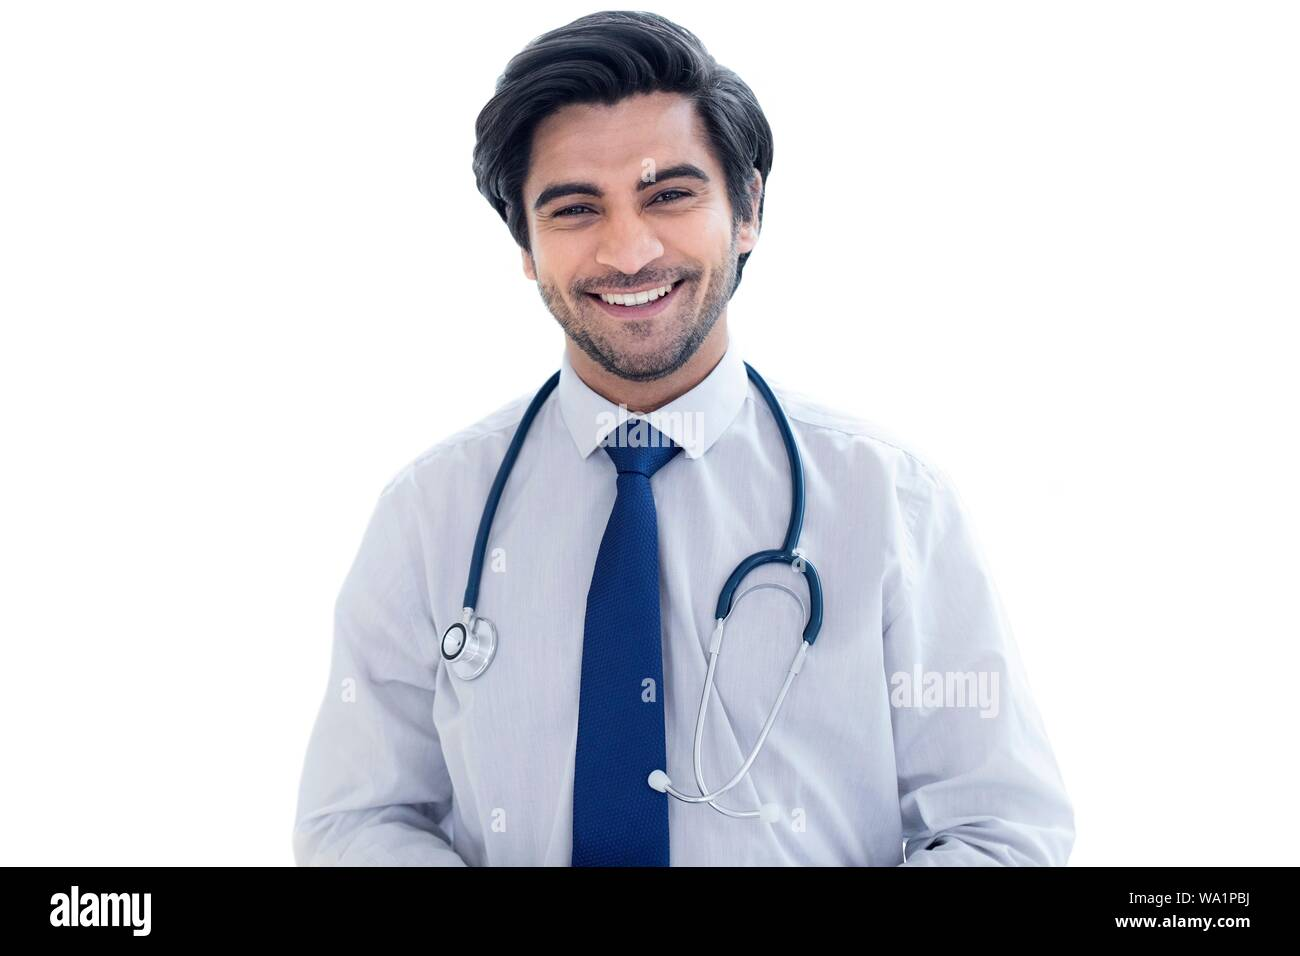 Doctor with stethoscope, portrait. Banque D'Images